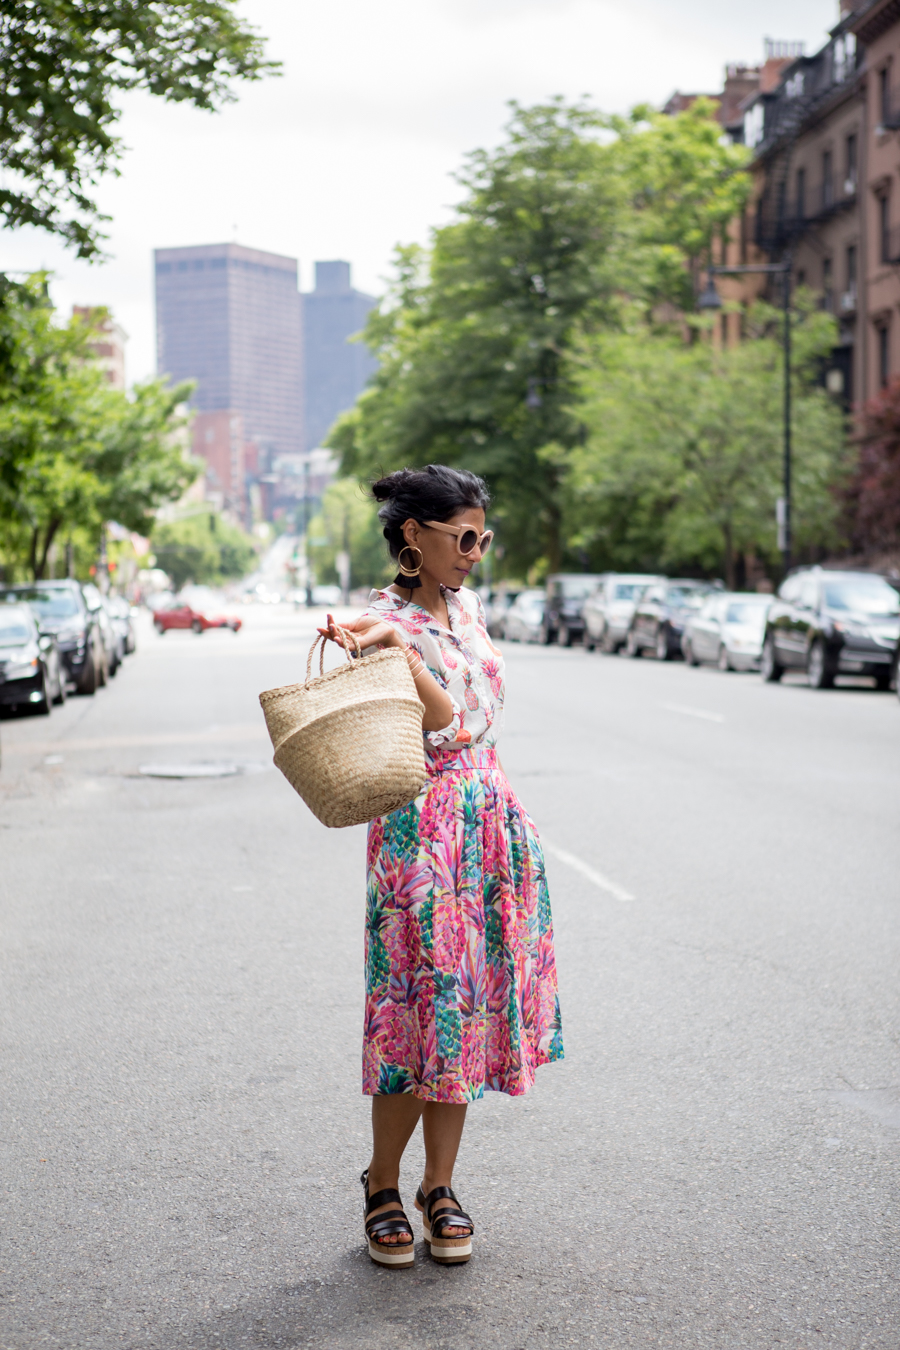 summer style, pineapples, summer prints, petite style, j.crew, preppy, mixing prints, wedges, zara, style tips, summer fashion, petite fashion, petitestylestudio, colorful style